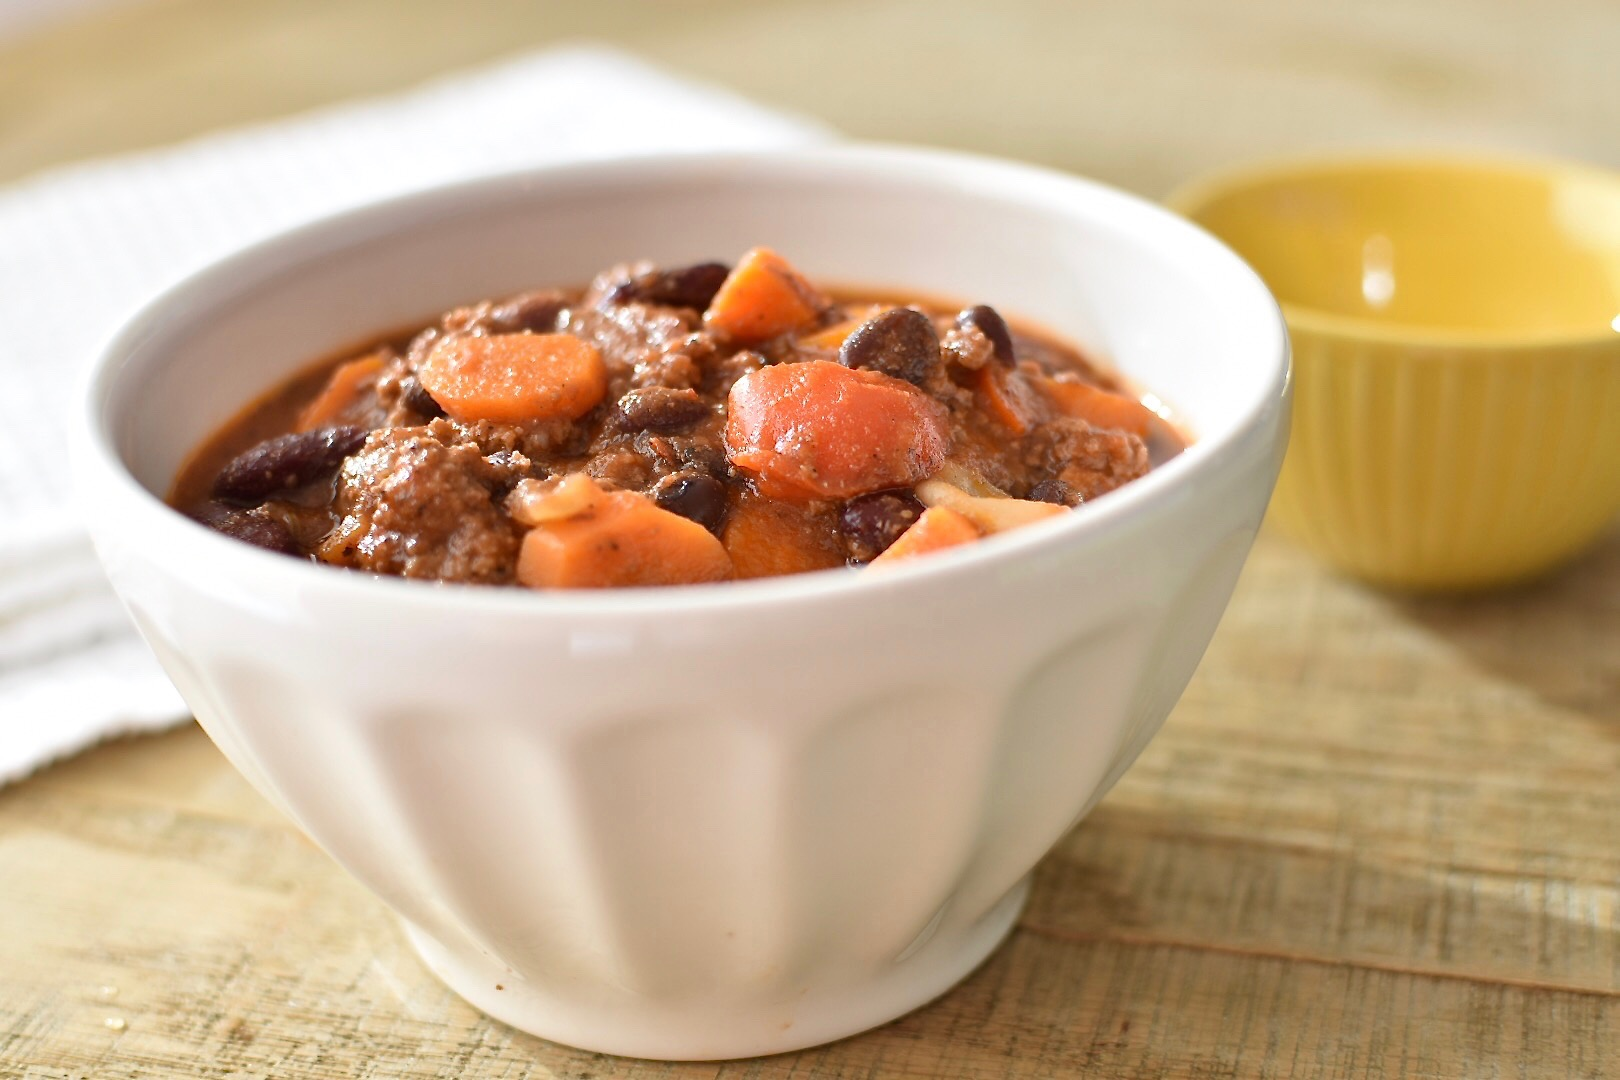 Chipotle And Stout Chili With Two Spoons